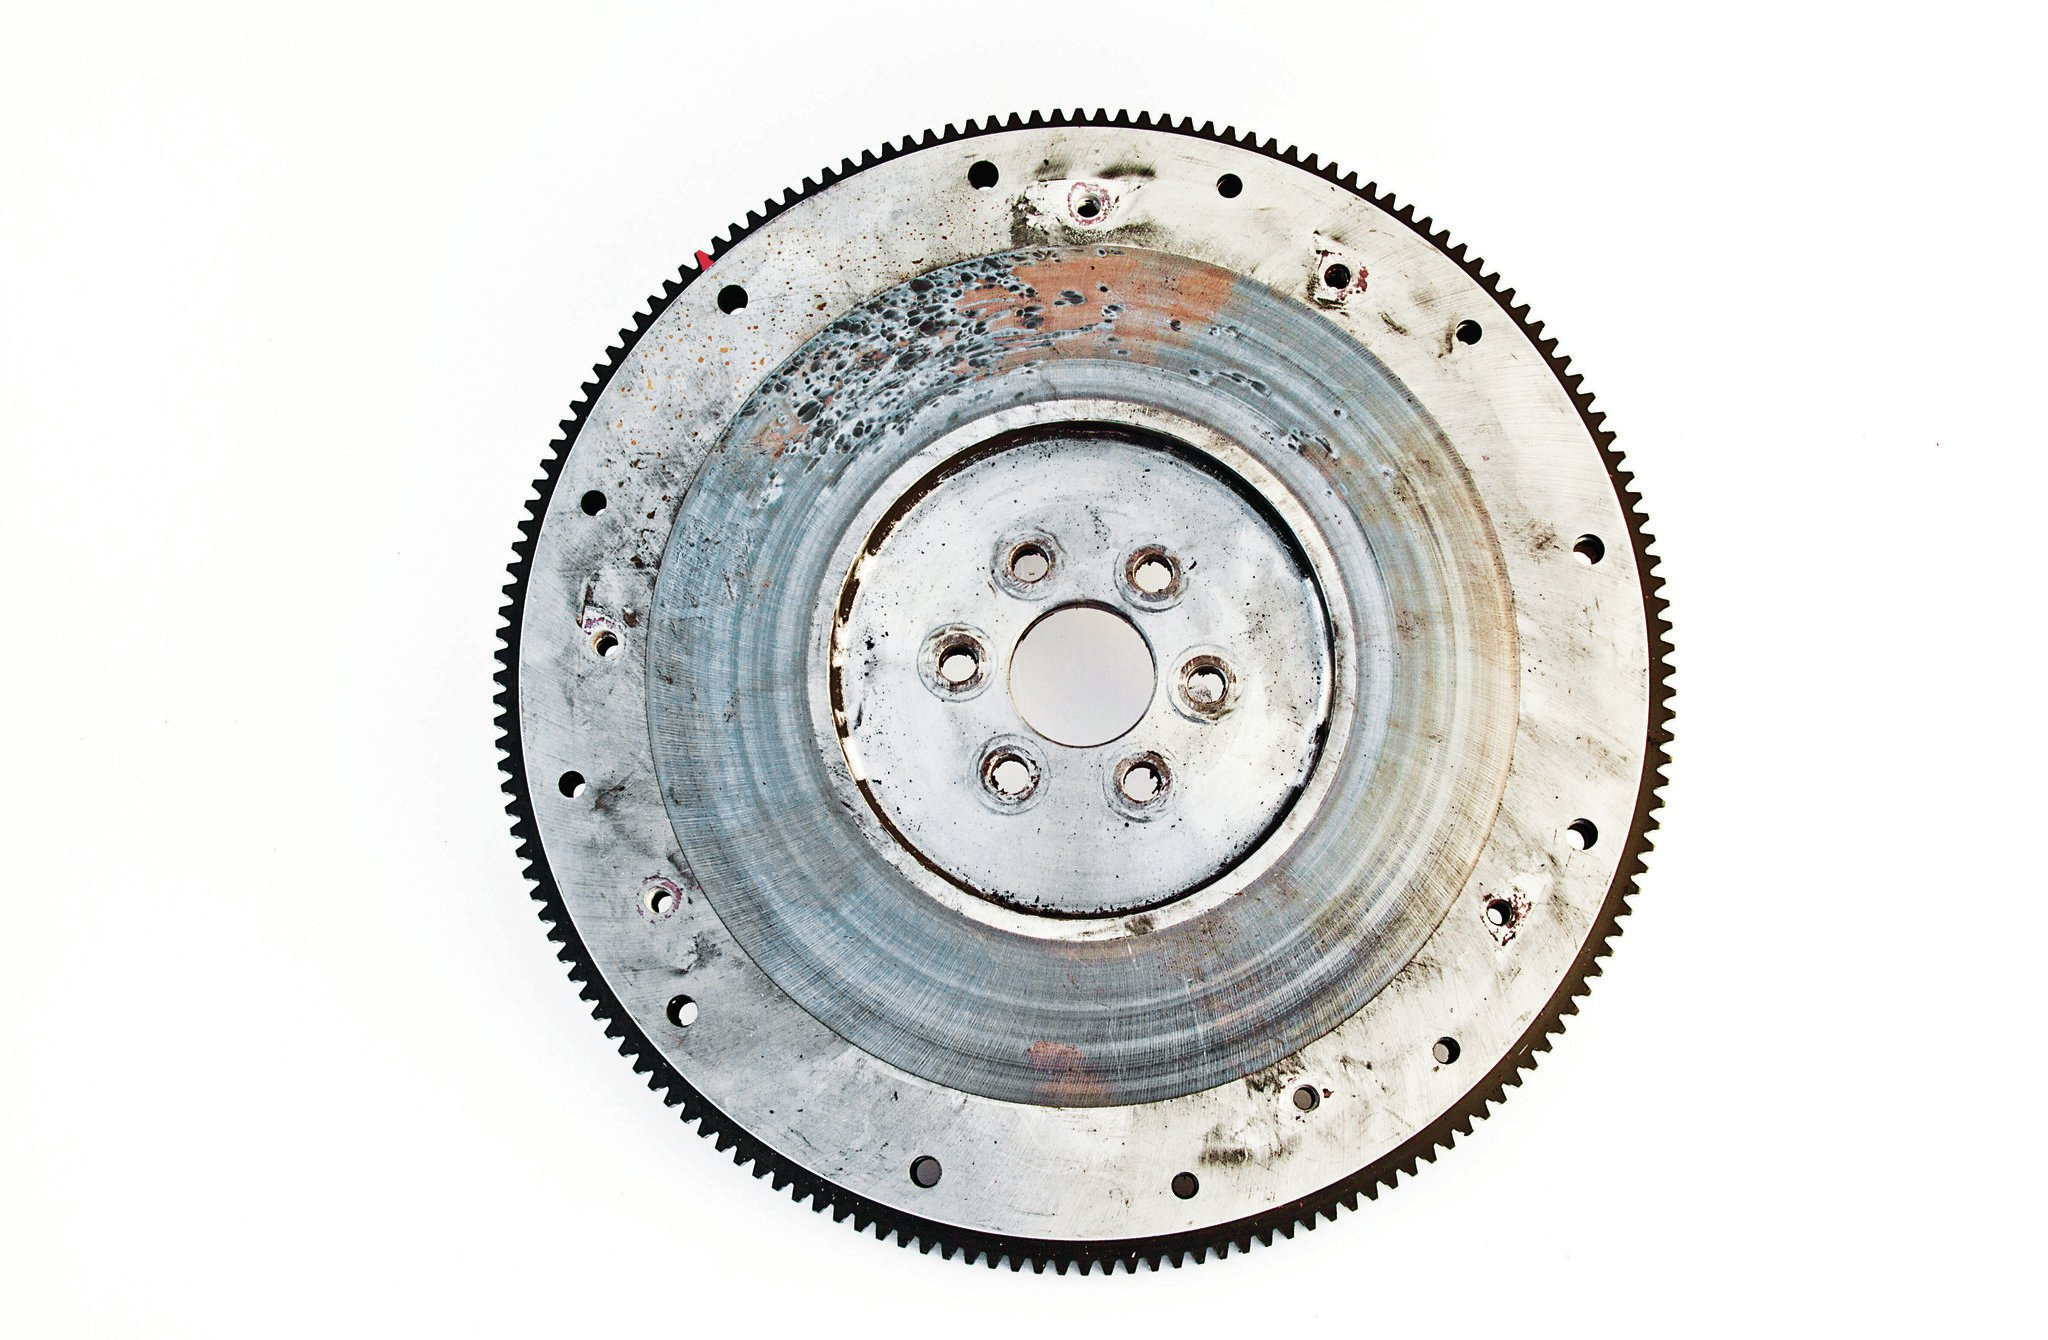 Bob's old Long-style flywheel, three-finger pressure plate, pilot bushing, and mechanical throwout bearing showed signs of improper installation, damage, and overall distress. The beefy 2,500-pound pressure plate lacks the antirotation locating dowels like those found on today's race-style Long clutches. It may have developed too much pressure for the stock Ford mechanical clutch linkage. Note the broken clip (arrow) on the throwout bearing.